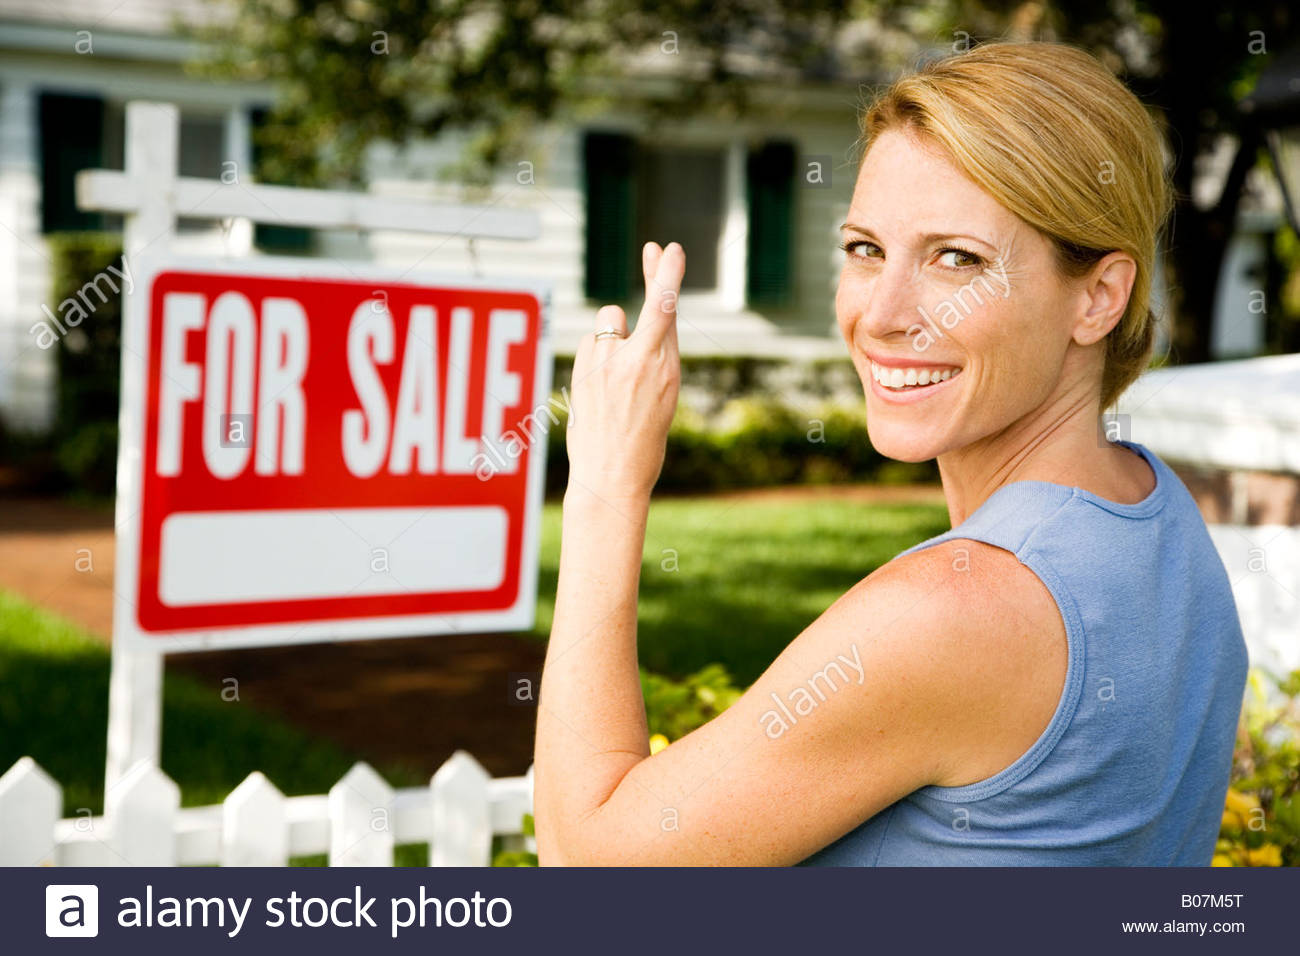 Woman standing by a for sale sign outside a family house, fingers crossed Stock Photo